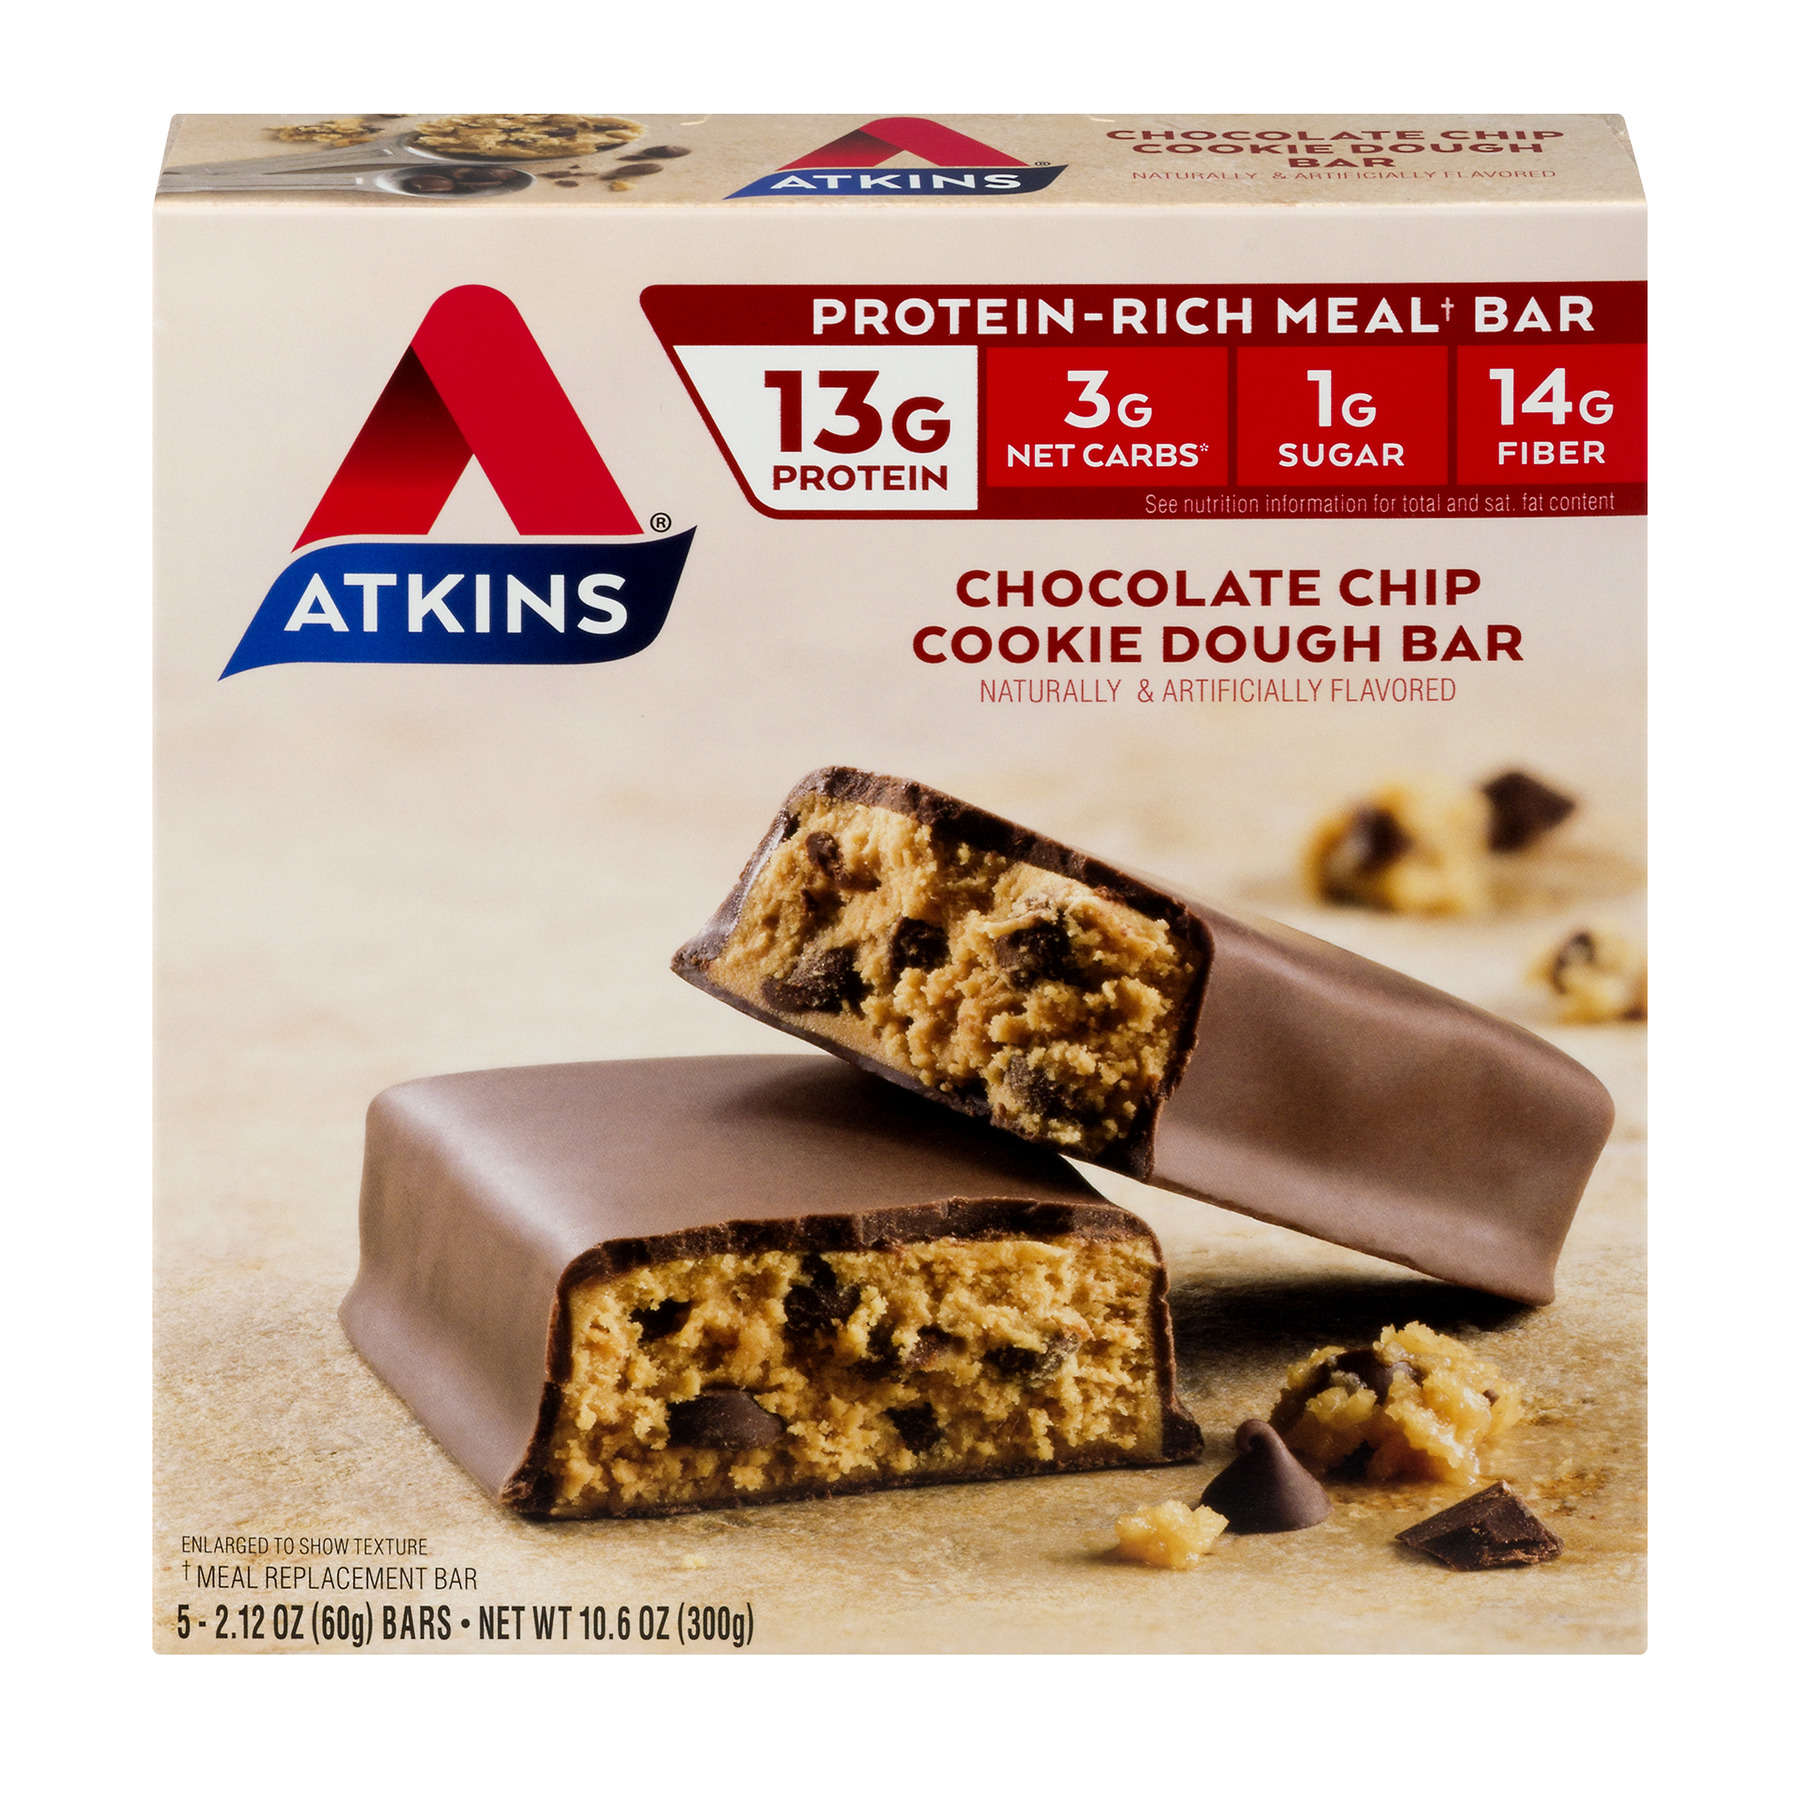 Atkins Chocolate Chip Cookie Dough Bars, 2.1oz, 5-pack (Meal Replacement)